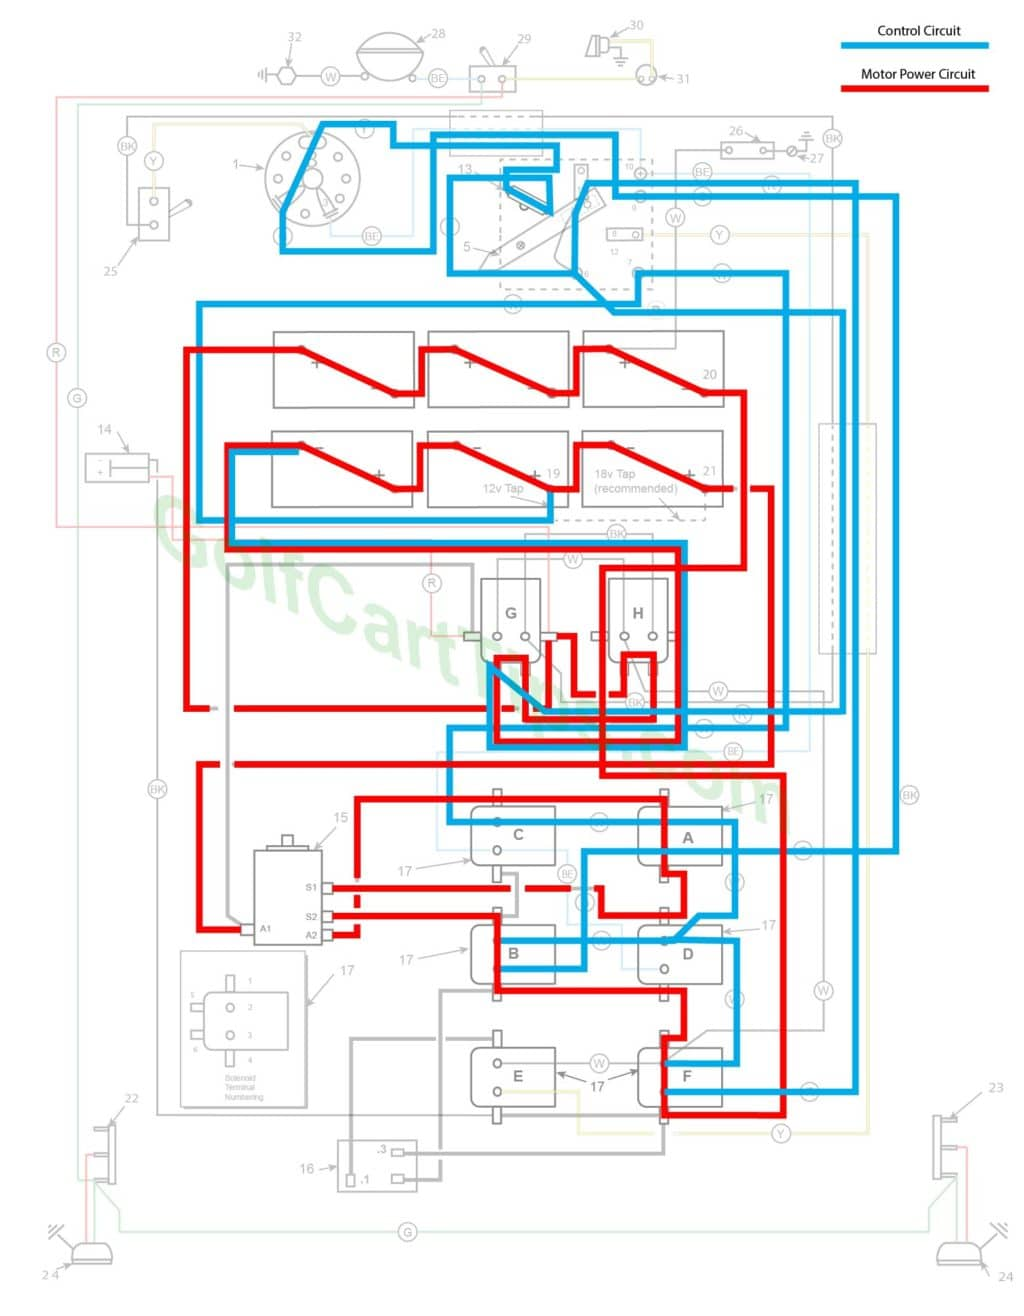 Troubleshooting Harley Davidson Golf Carts Dec 1966 To 1968 120 Volt Solenoid Switch Wiring Diagram High Range 36 Volts 6 Batteries In Series